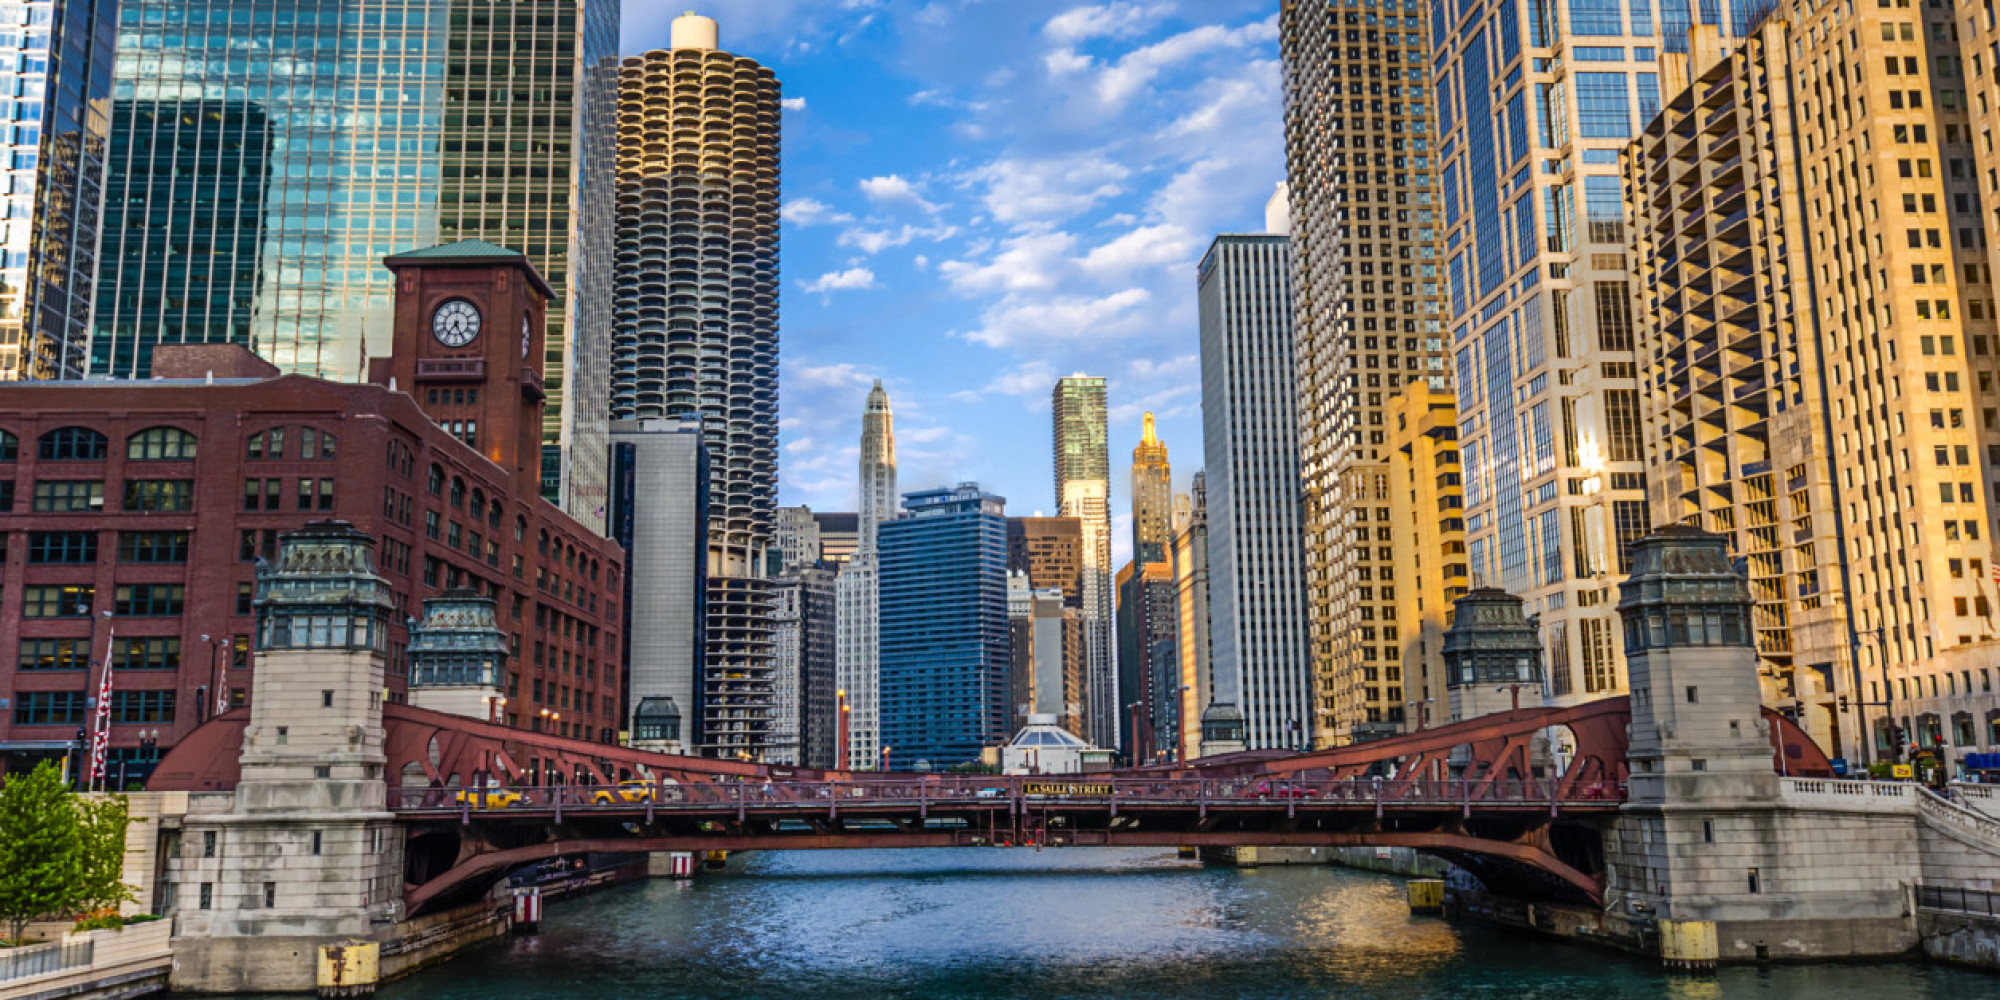 Chicago Named Nation's #2 City To Visit By Condé Nast Traveler